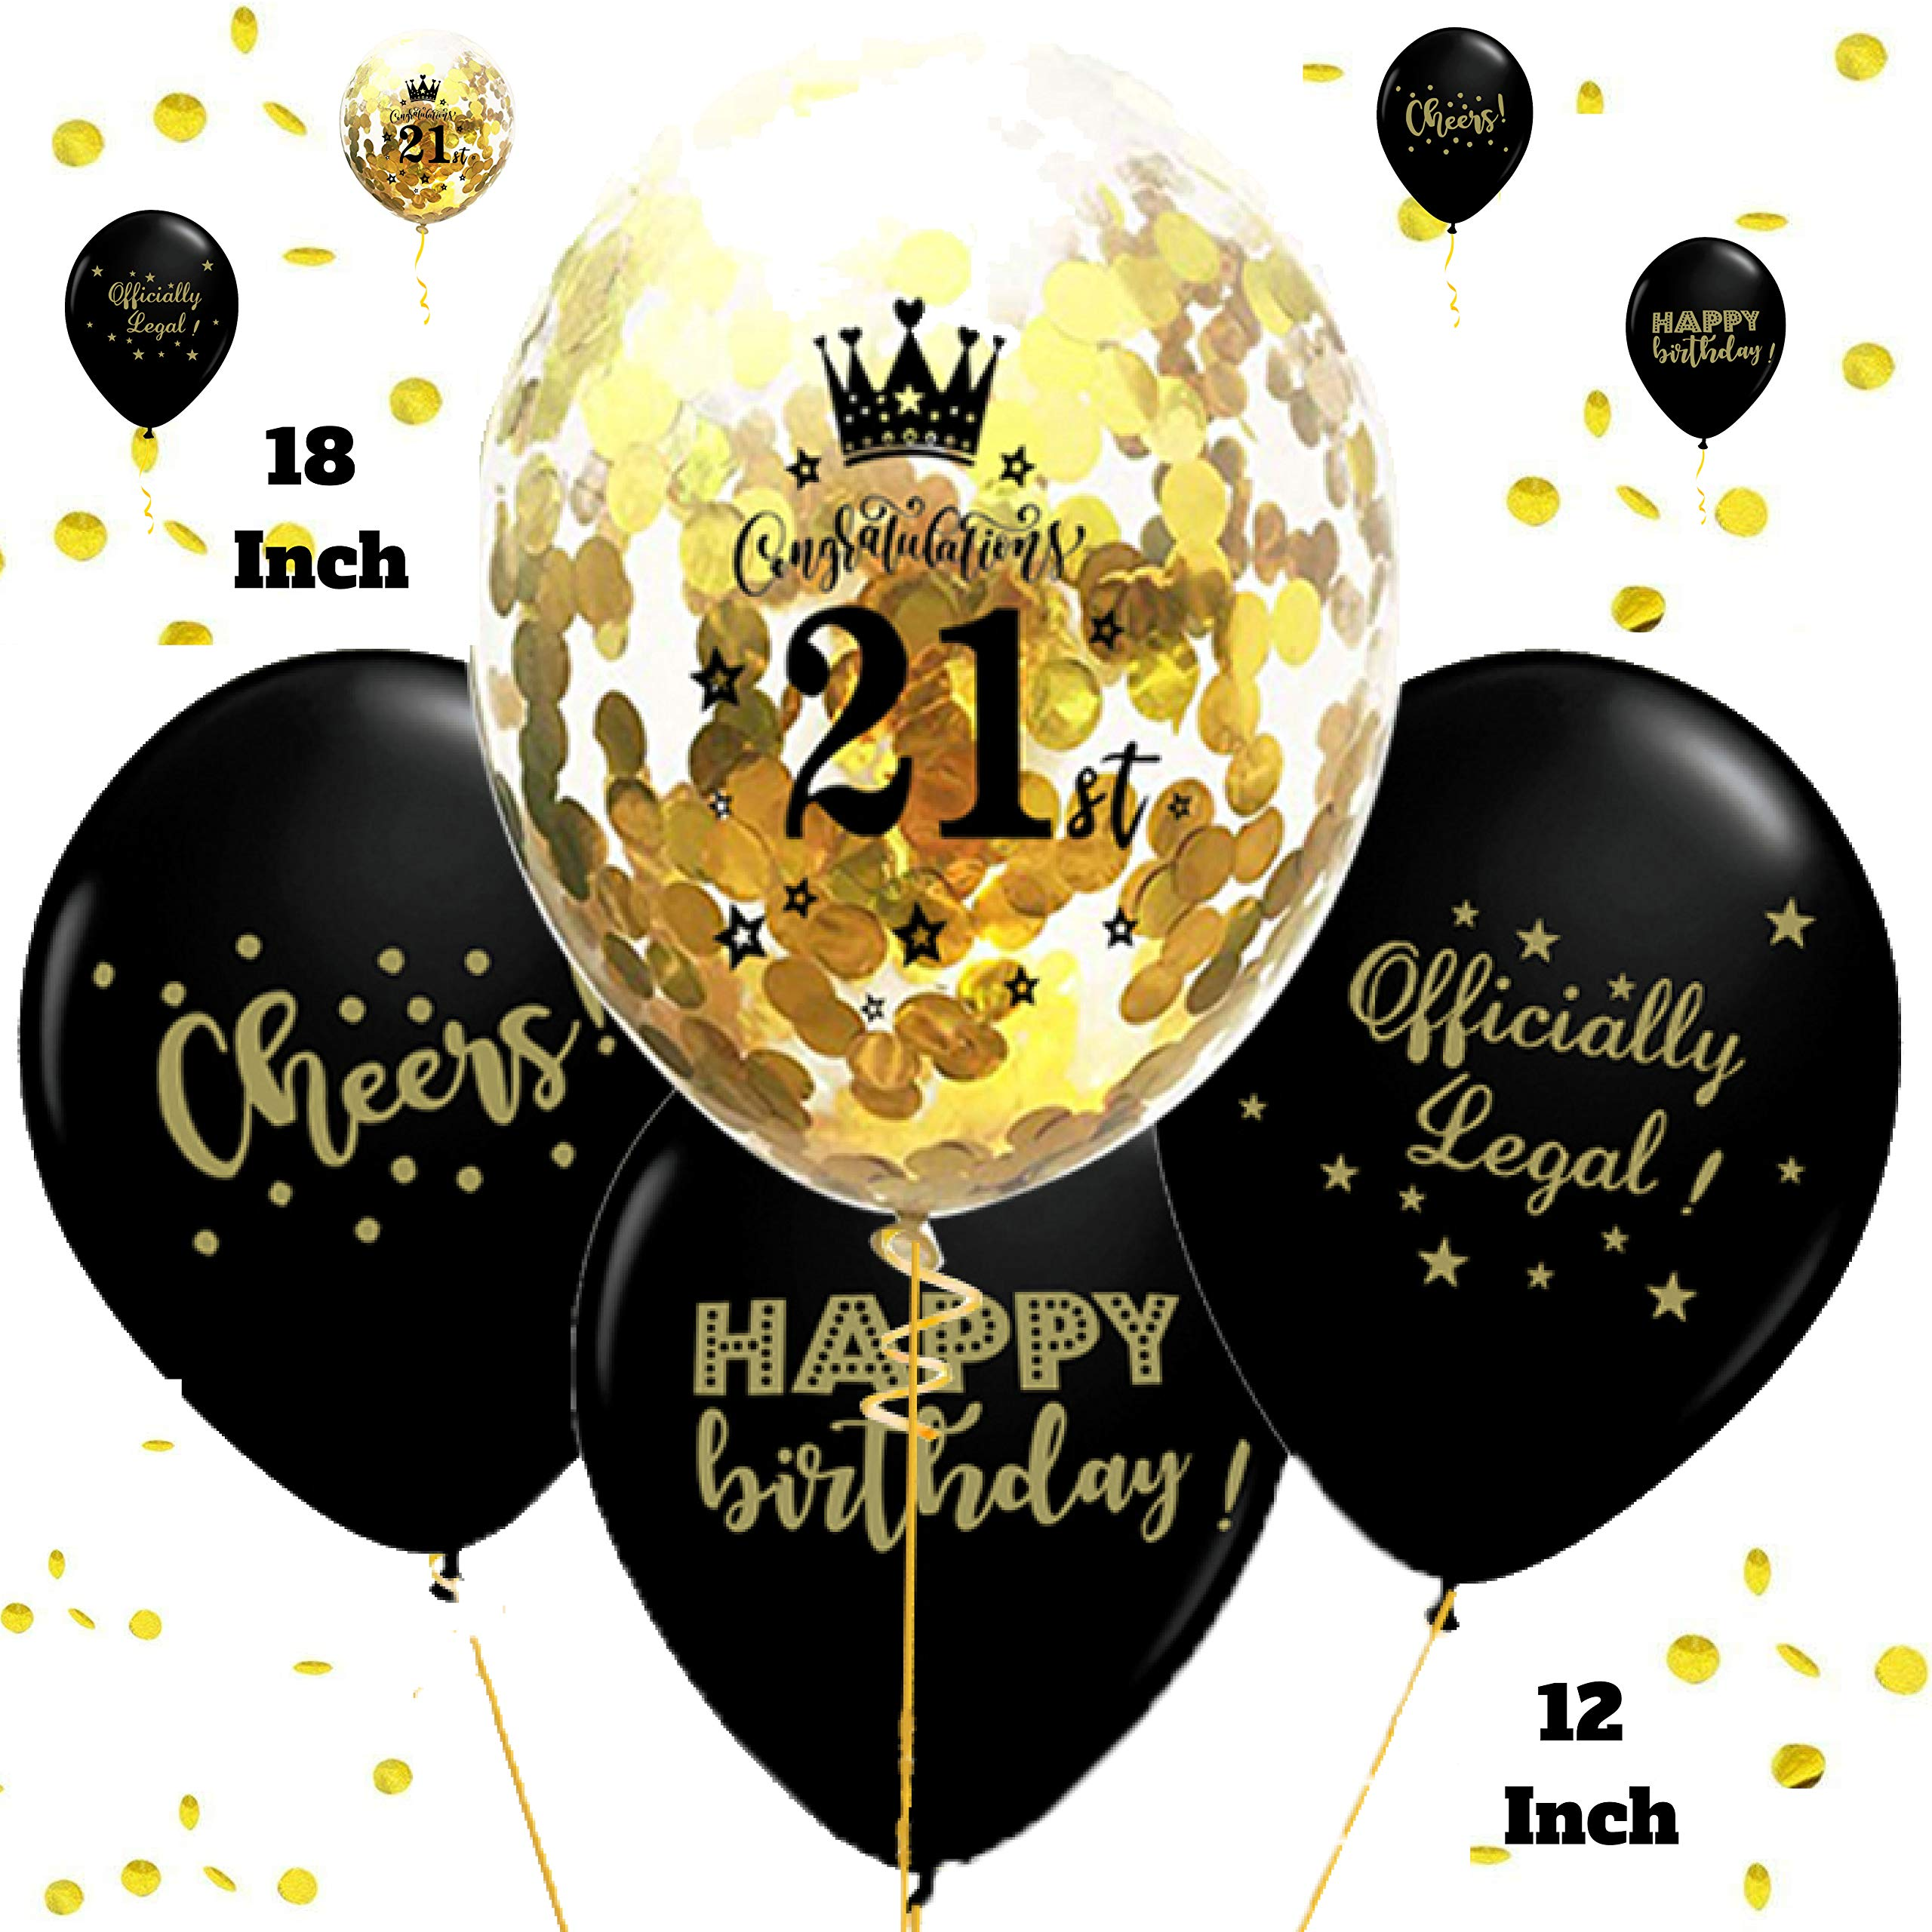 Otyland Decor 21st Birthday Decorations Set 18 Inch Gold Confetti Balloons 12 Black Number 21 Balloon Happy Bday Kit Queen Crown Tiara Party